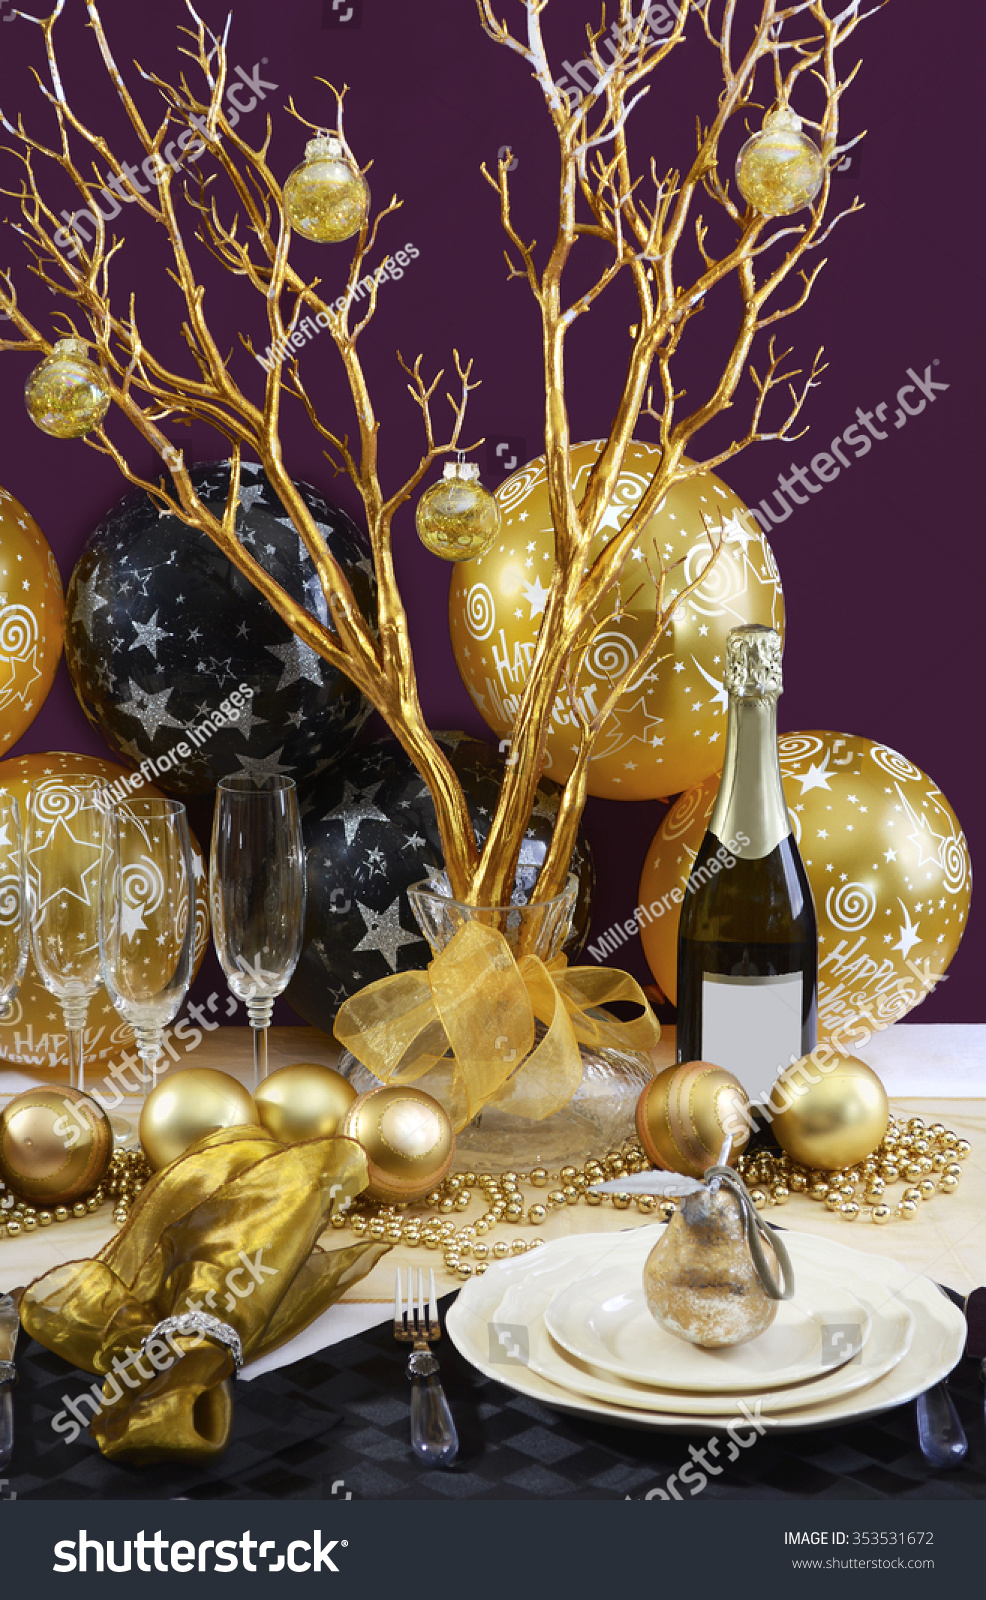 Happy New Years Eve Elegant Dinner Stock Photo 353531672 ...